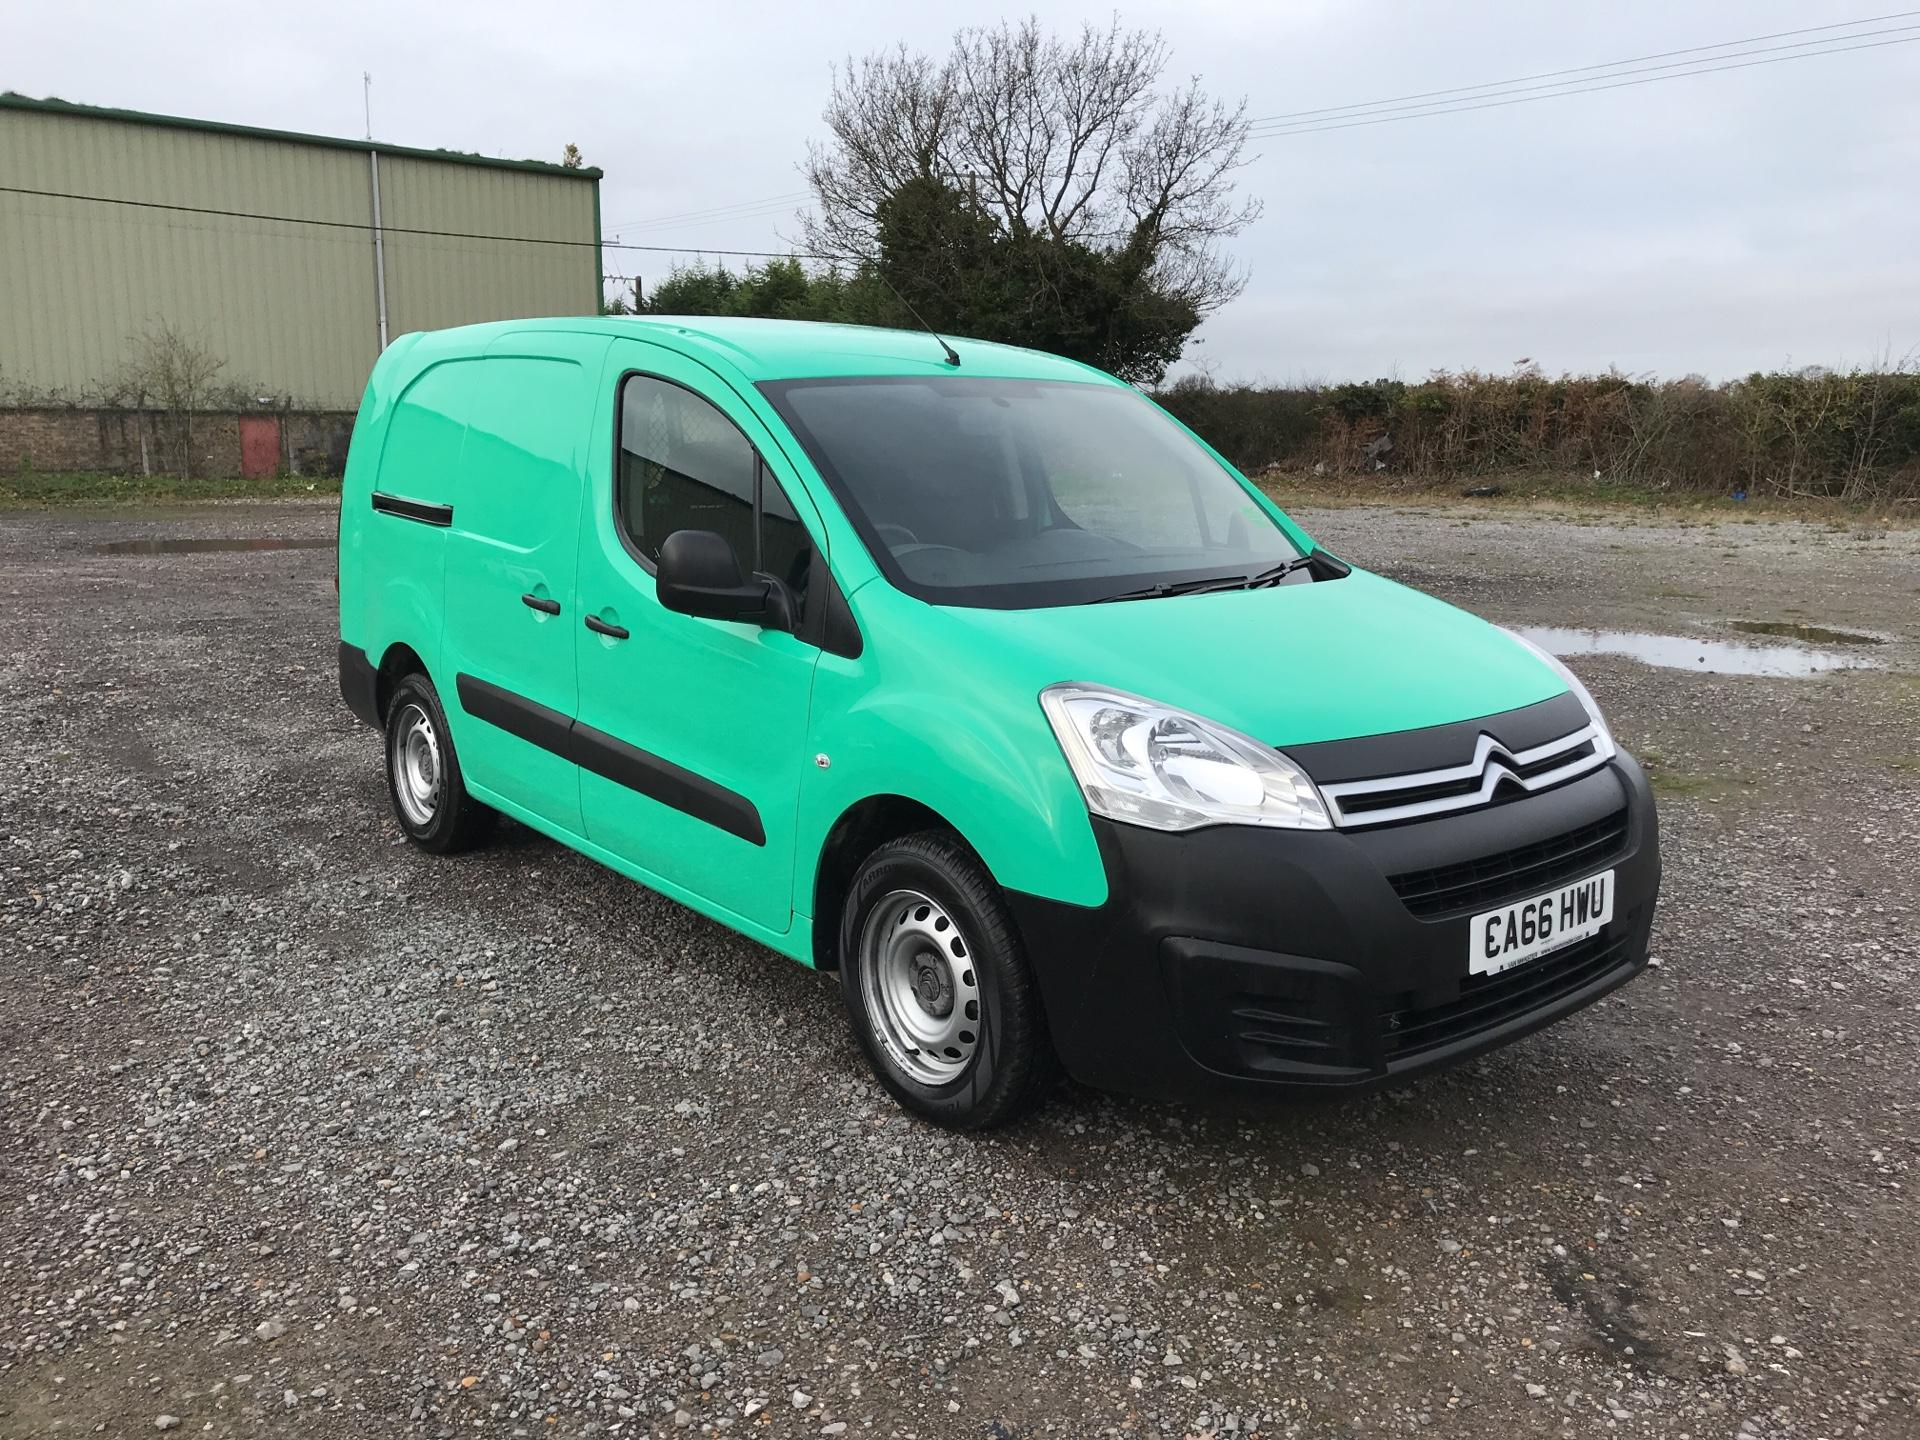 2017 Citroen Berlingo L2 DIESEL 1.6 BLUEHDI 750 LX 100PS EURO 6  (CA66HWU)